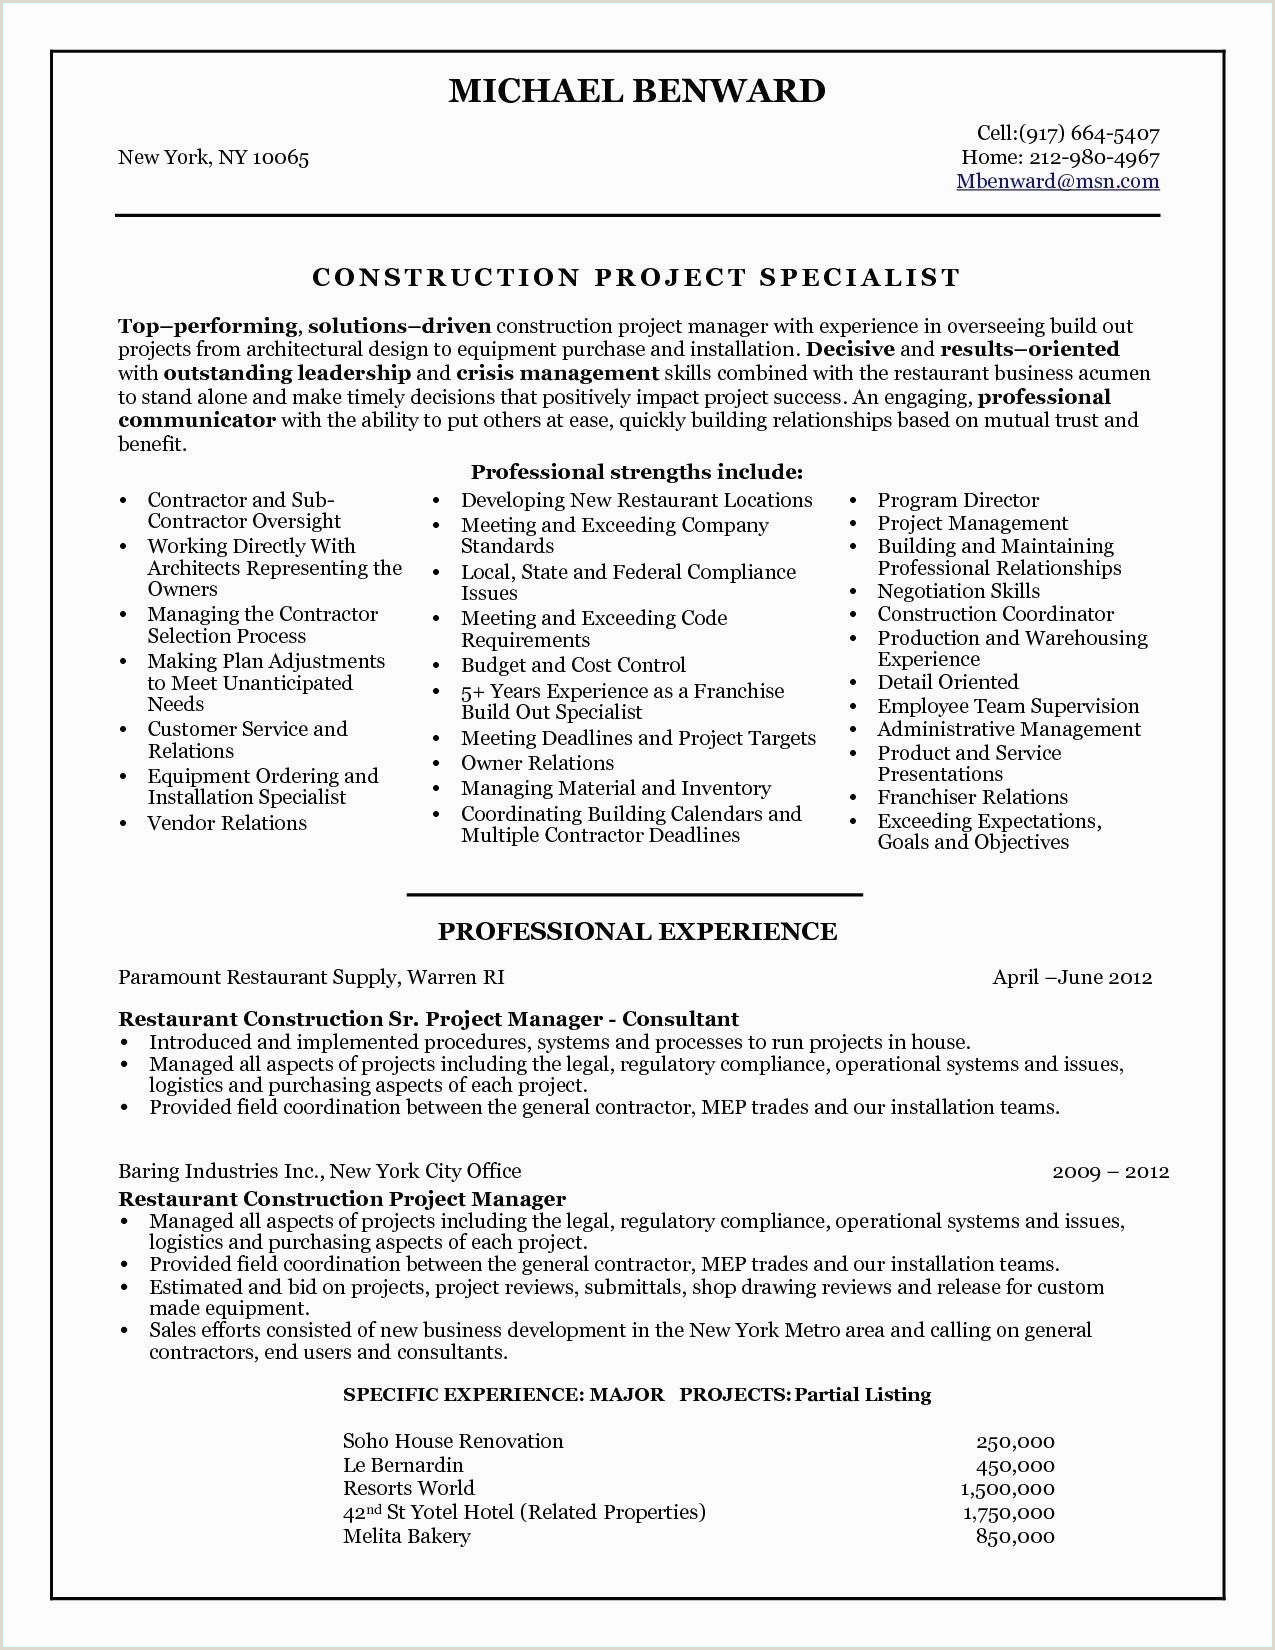 Cover Letter for Director Of Operations Cover Letter for Construction Professional Cover Letter for